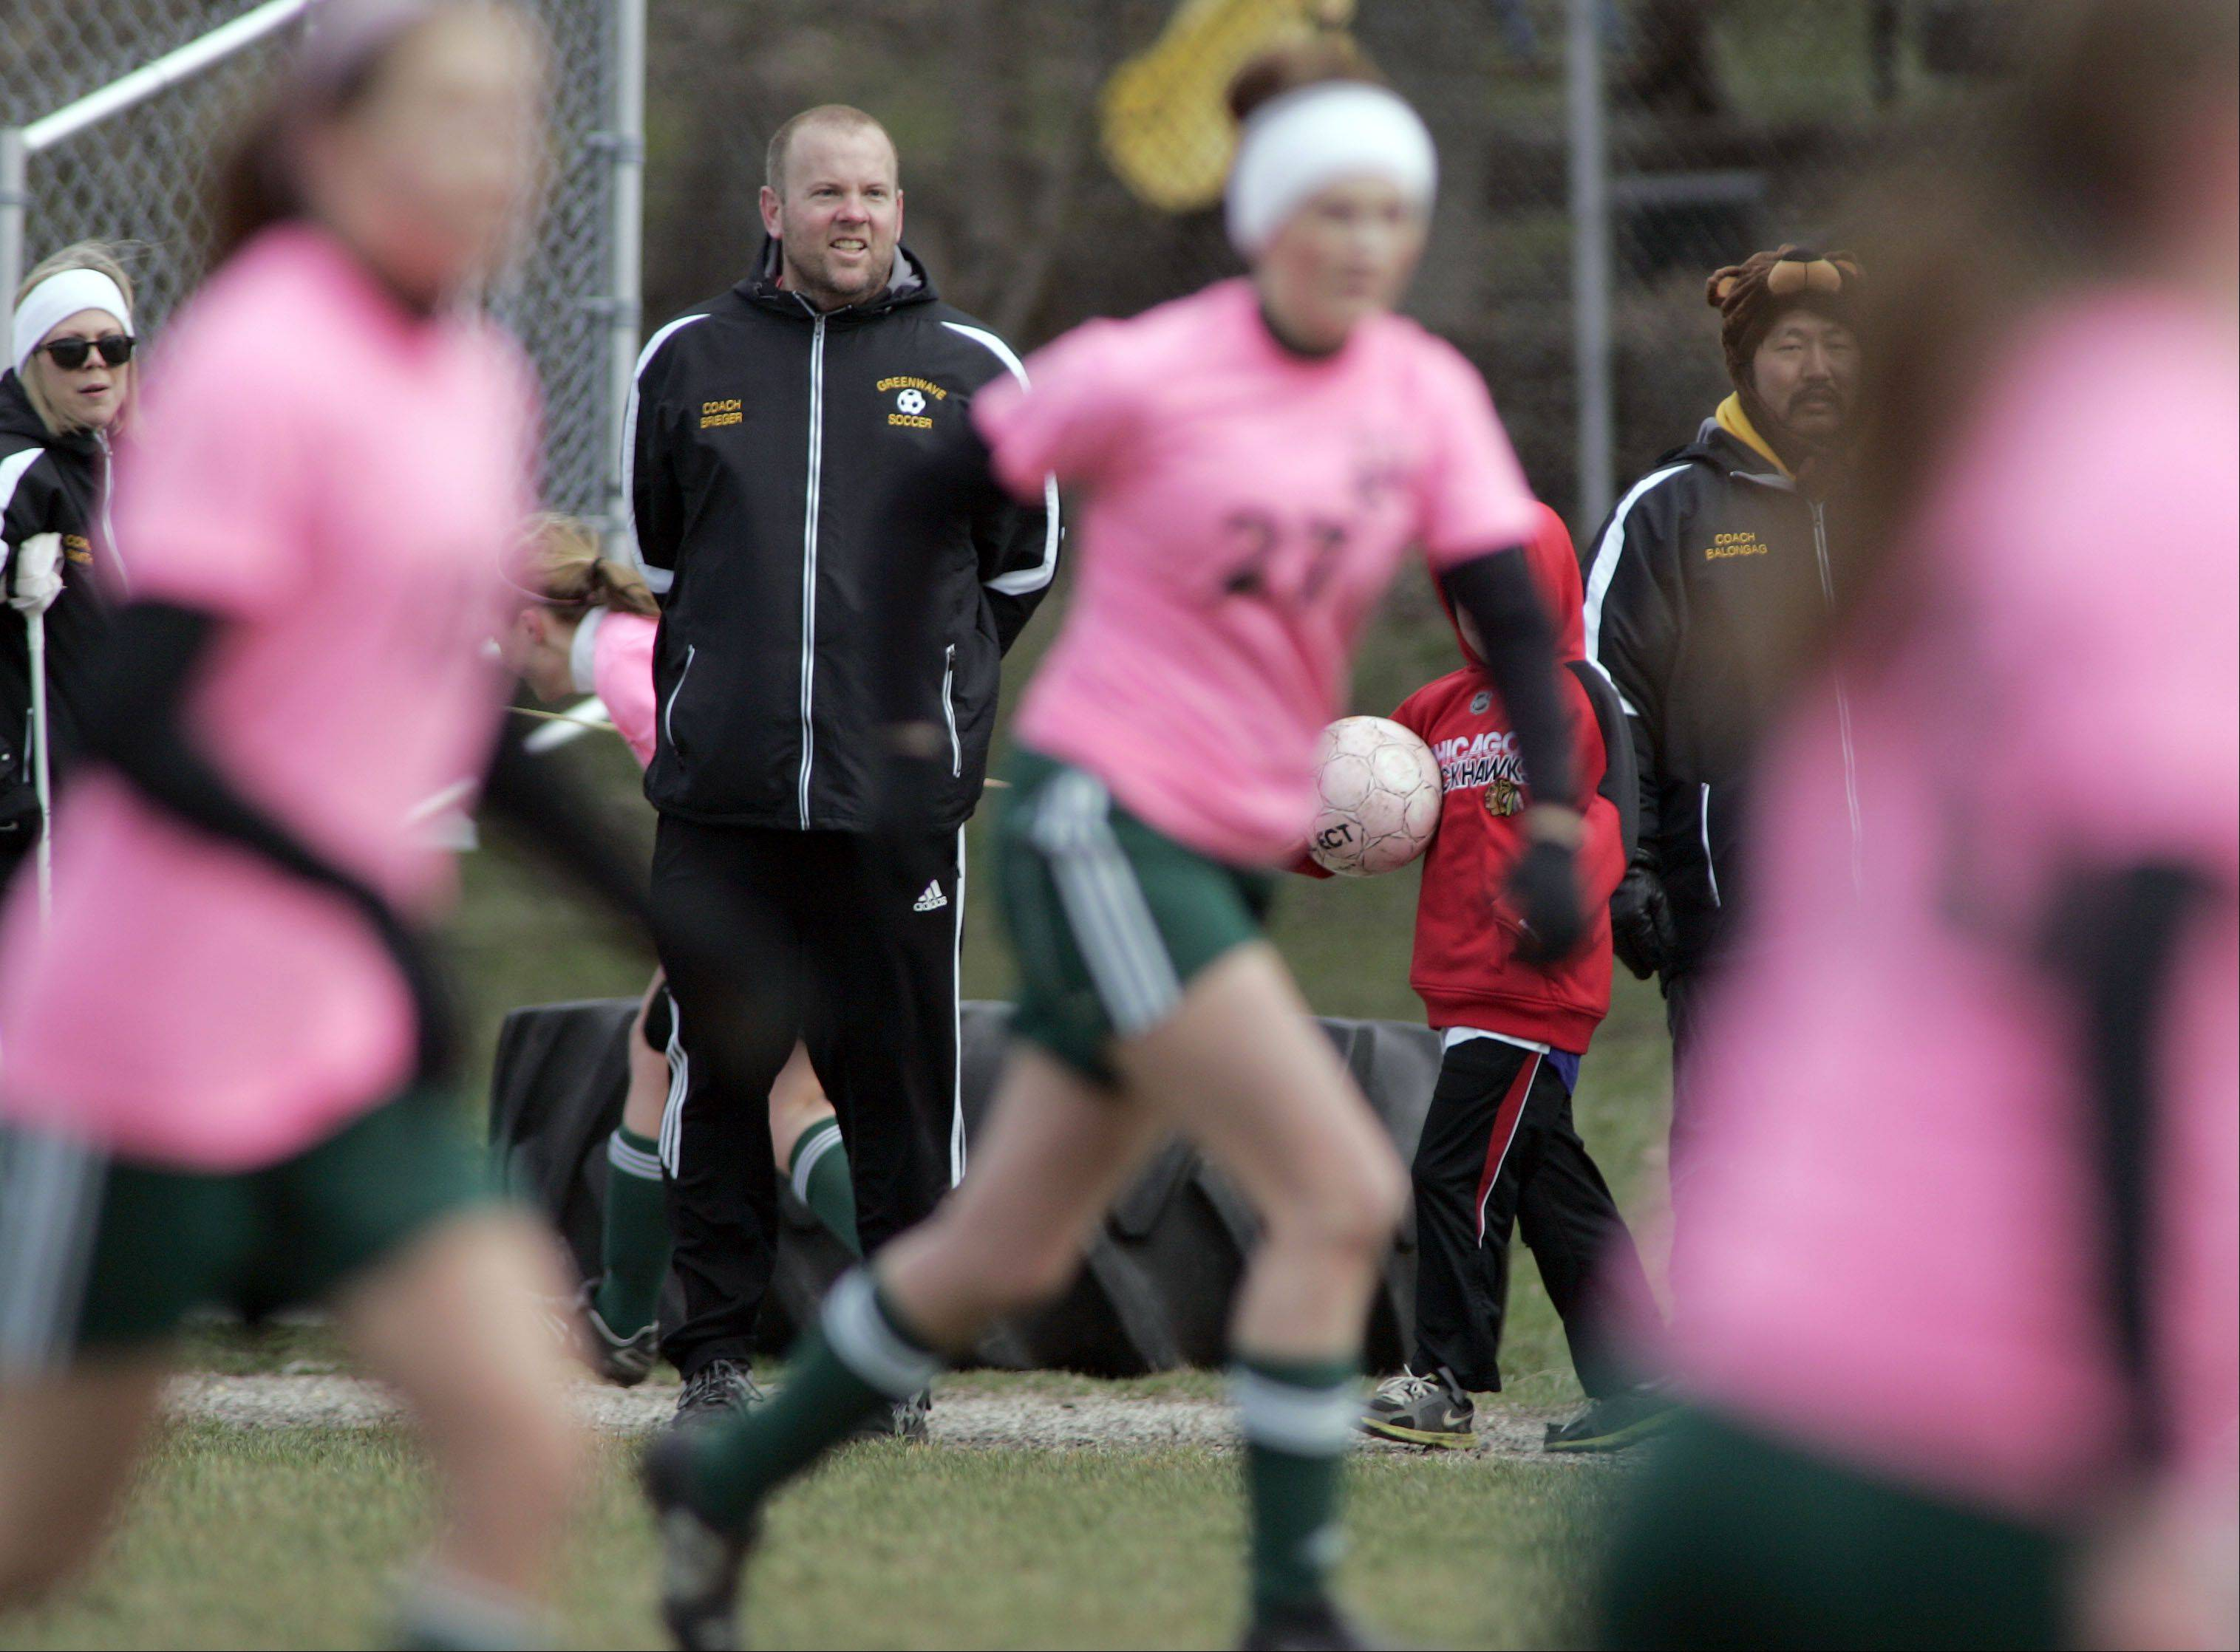 St. Edward girls soccer coach Tim Brieger, background, won his 200th game with the Green Wave girls program Saturday when his team beat Harvest Christian 3-0 at the Green Wave Invitational. Brieger started the girls program in 1996.